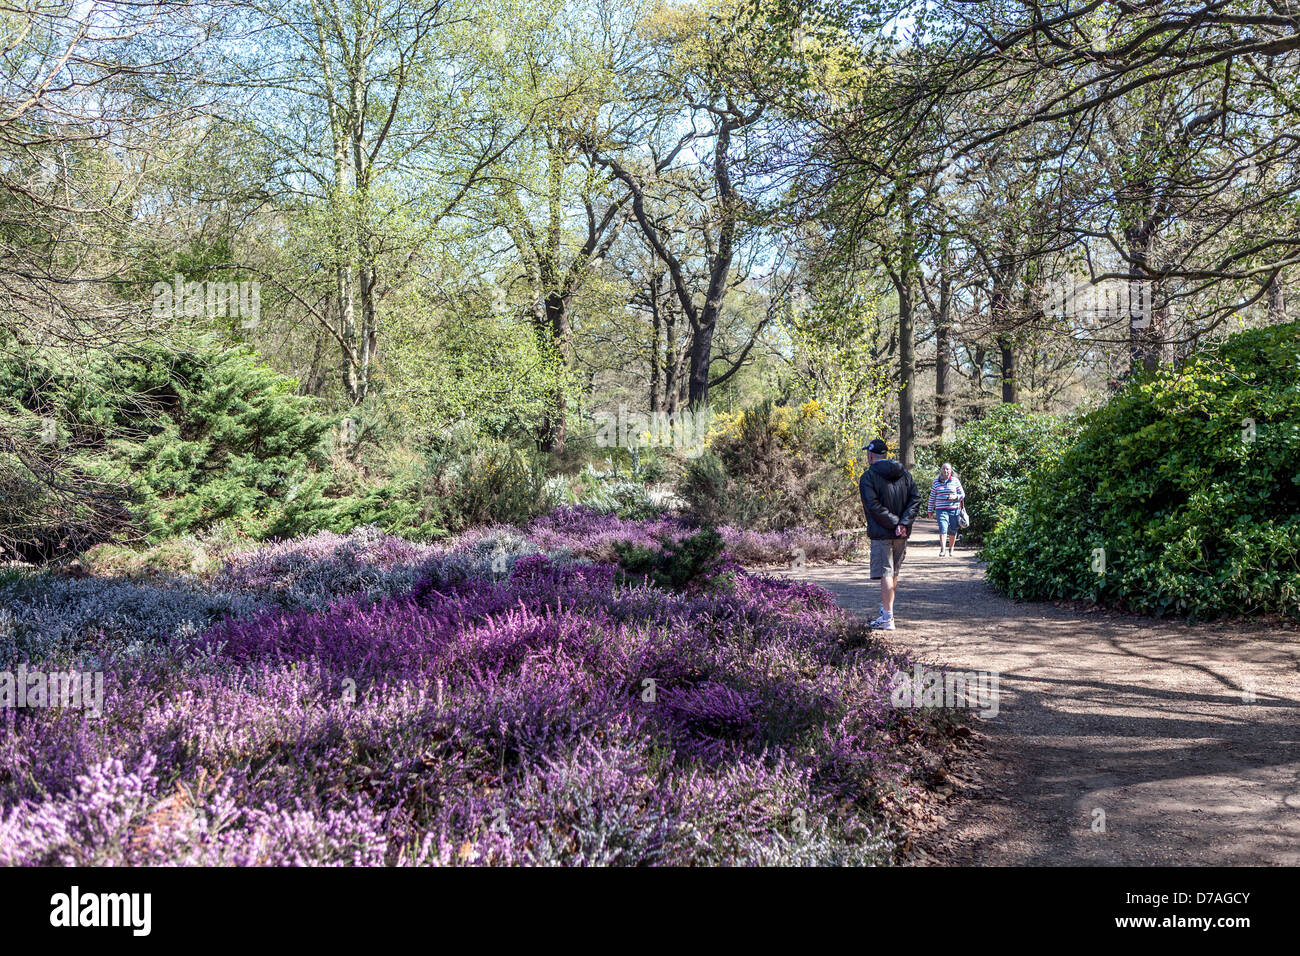 Isabella plantation richmond park greater london uk 1st may 2013 spring arrives in london after an long cold winter people enjoy the dappled